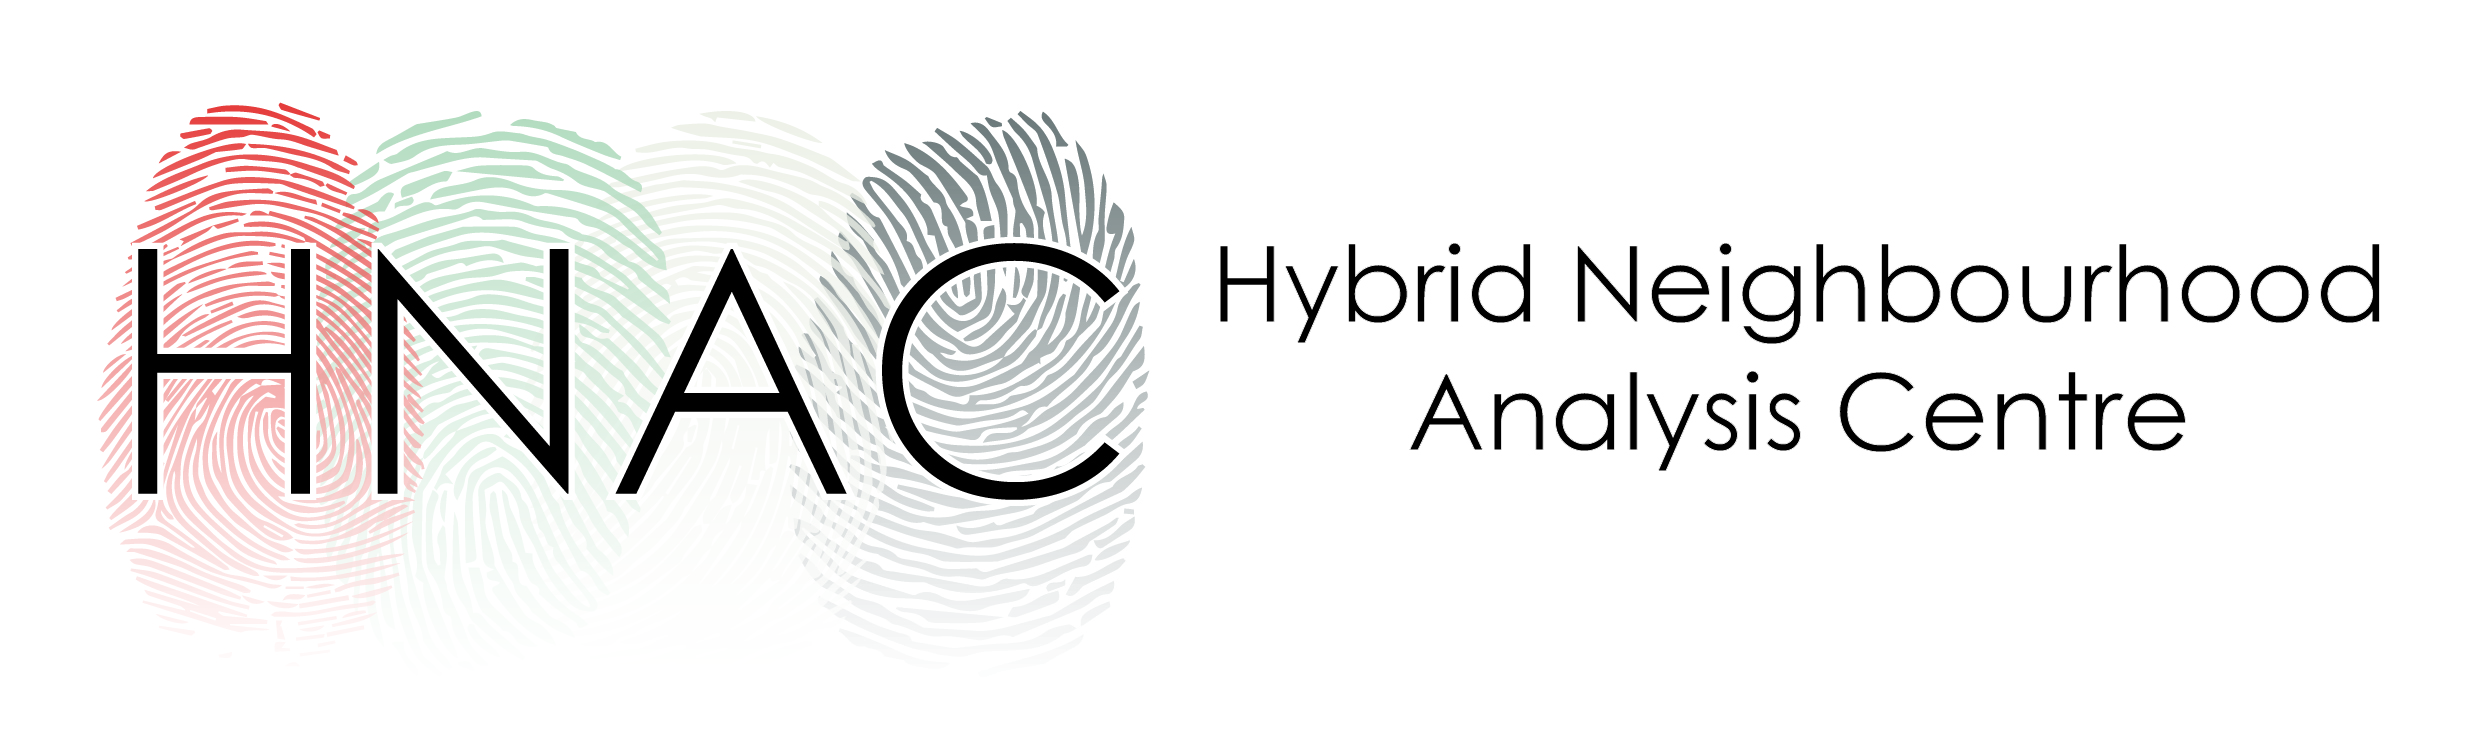 HNAC – Hybrid Neighbourhood Analysis Centre